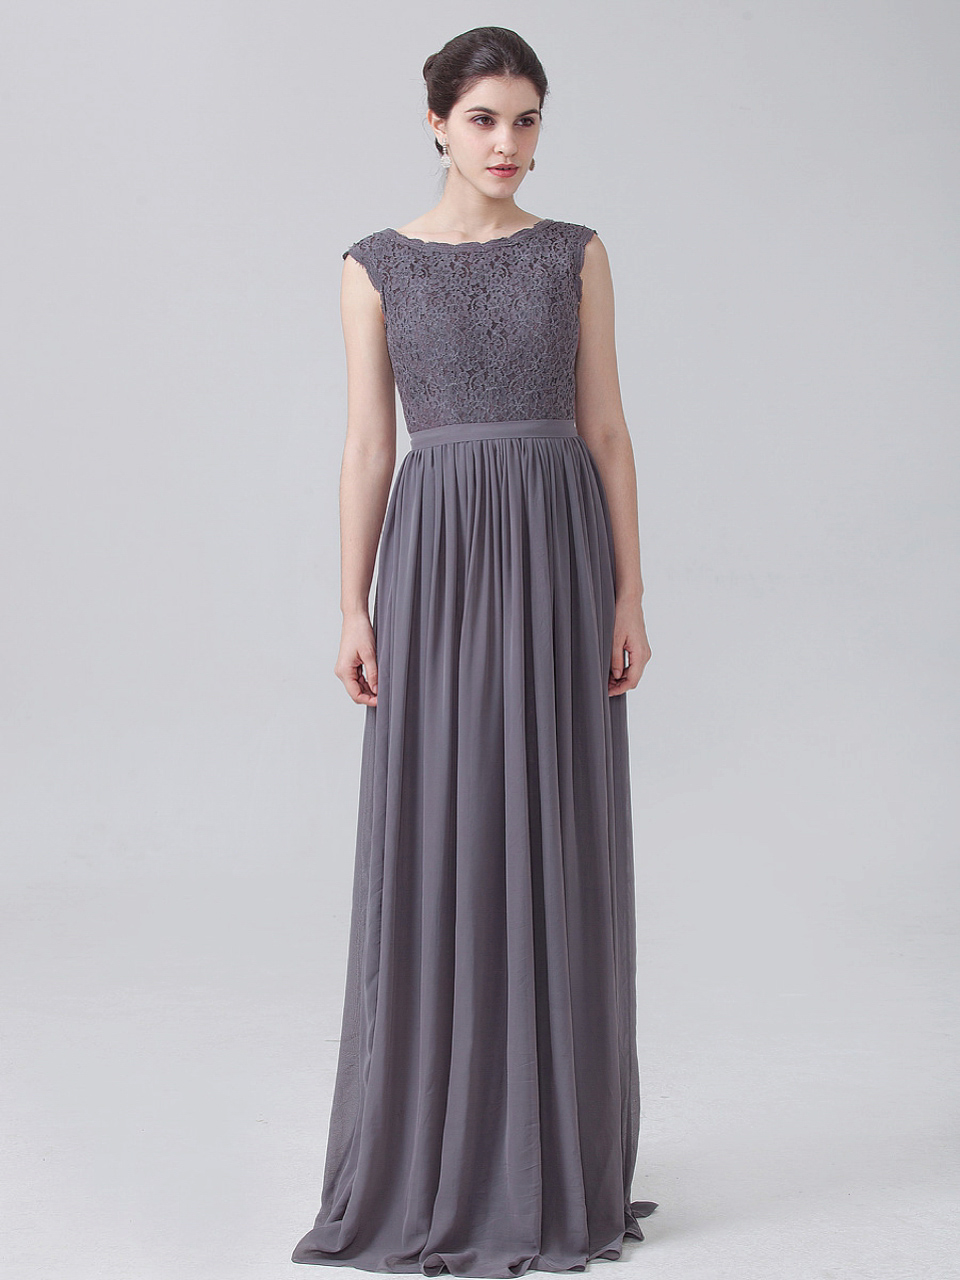 2642525ccdd It s May Sale Time! Up To 30% Off Bridesmaid Dresses From For Her ...